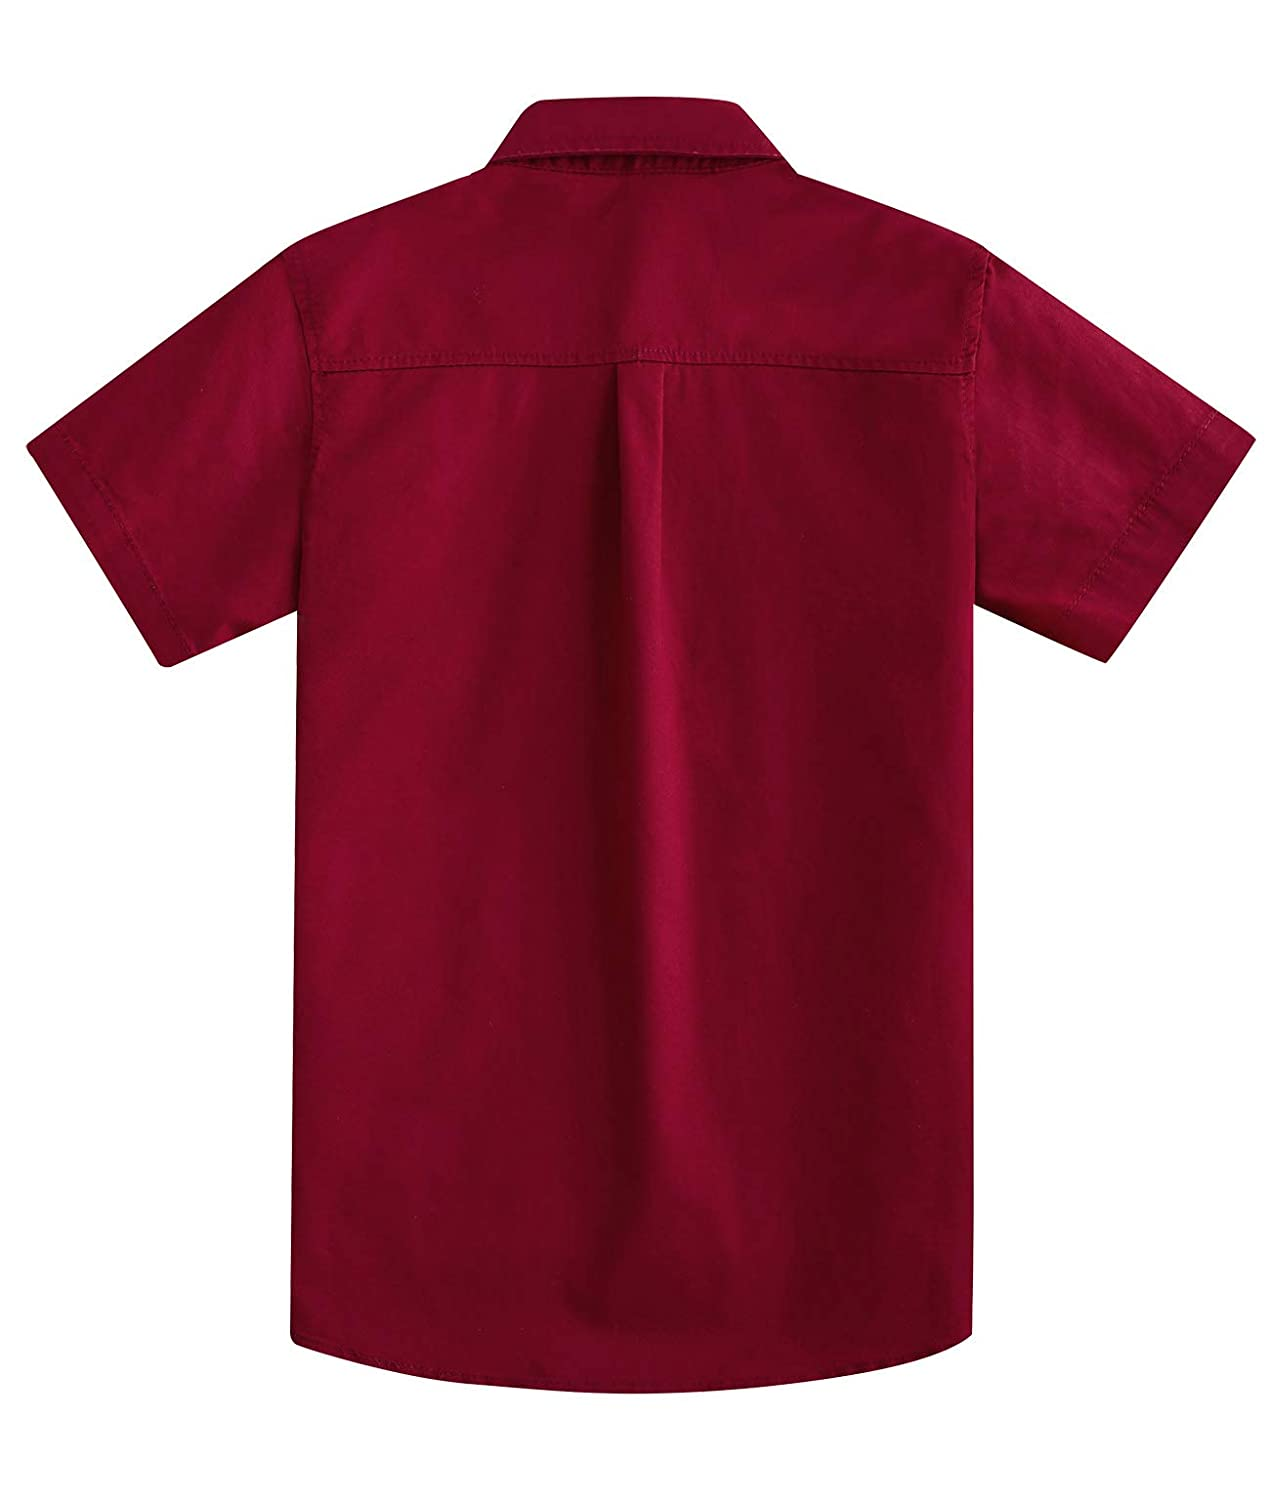 Spring/&Gege Boys Long Sleeve Solid Formal Cotton Twill Dress Shirts